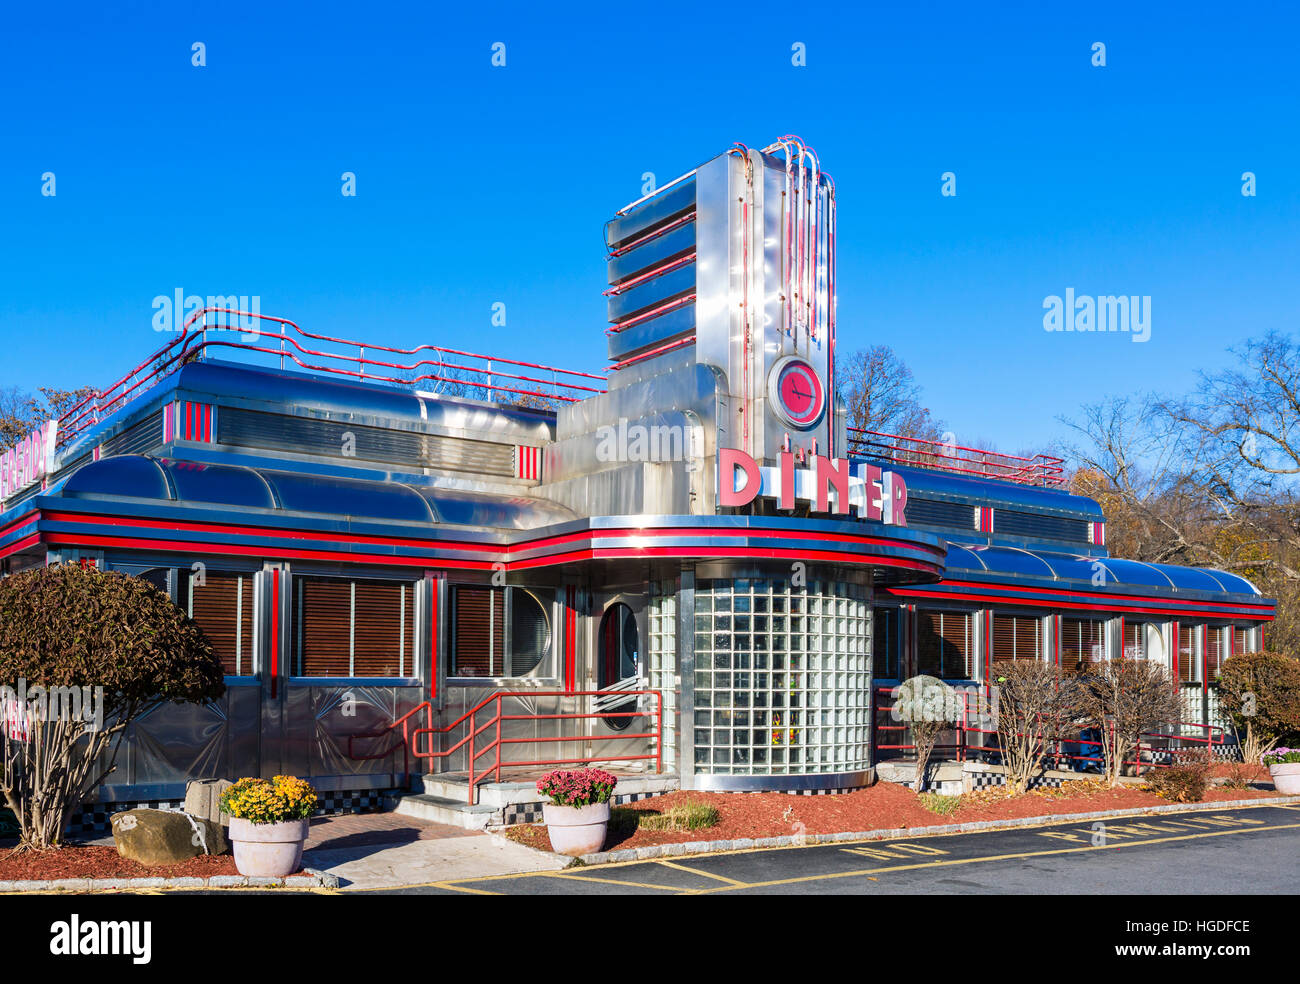 Küche American Diner Style American Diner Stock Photos And American Diner Stock Images